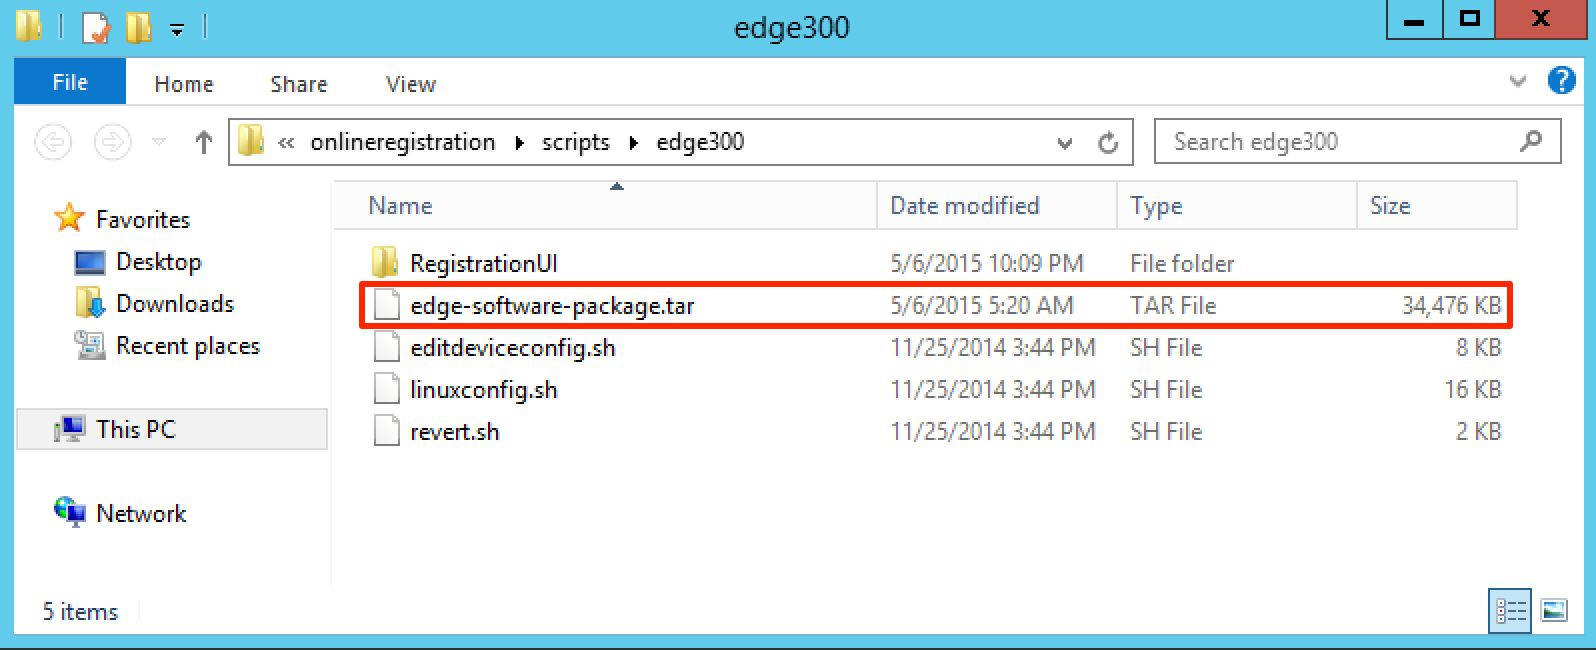 Configuring and registering an Intel NUC — Appspace v6 1 Documentation